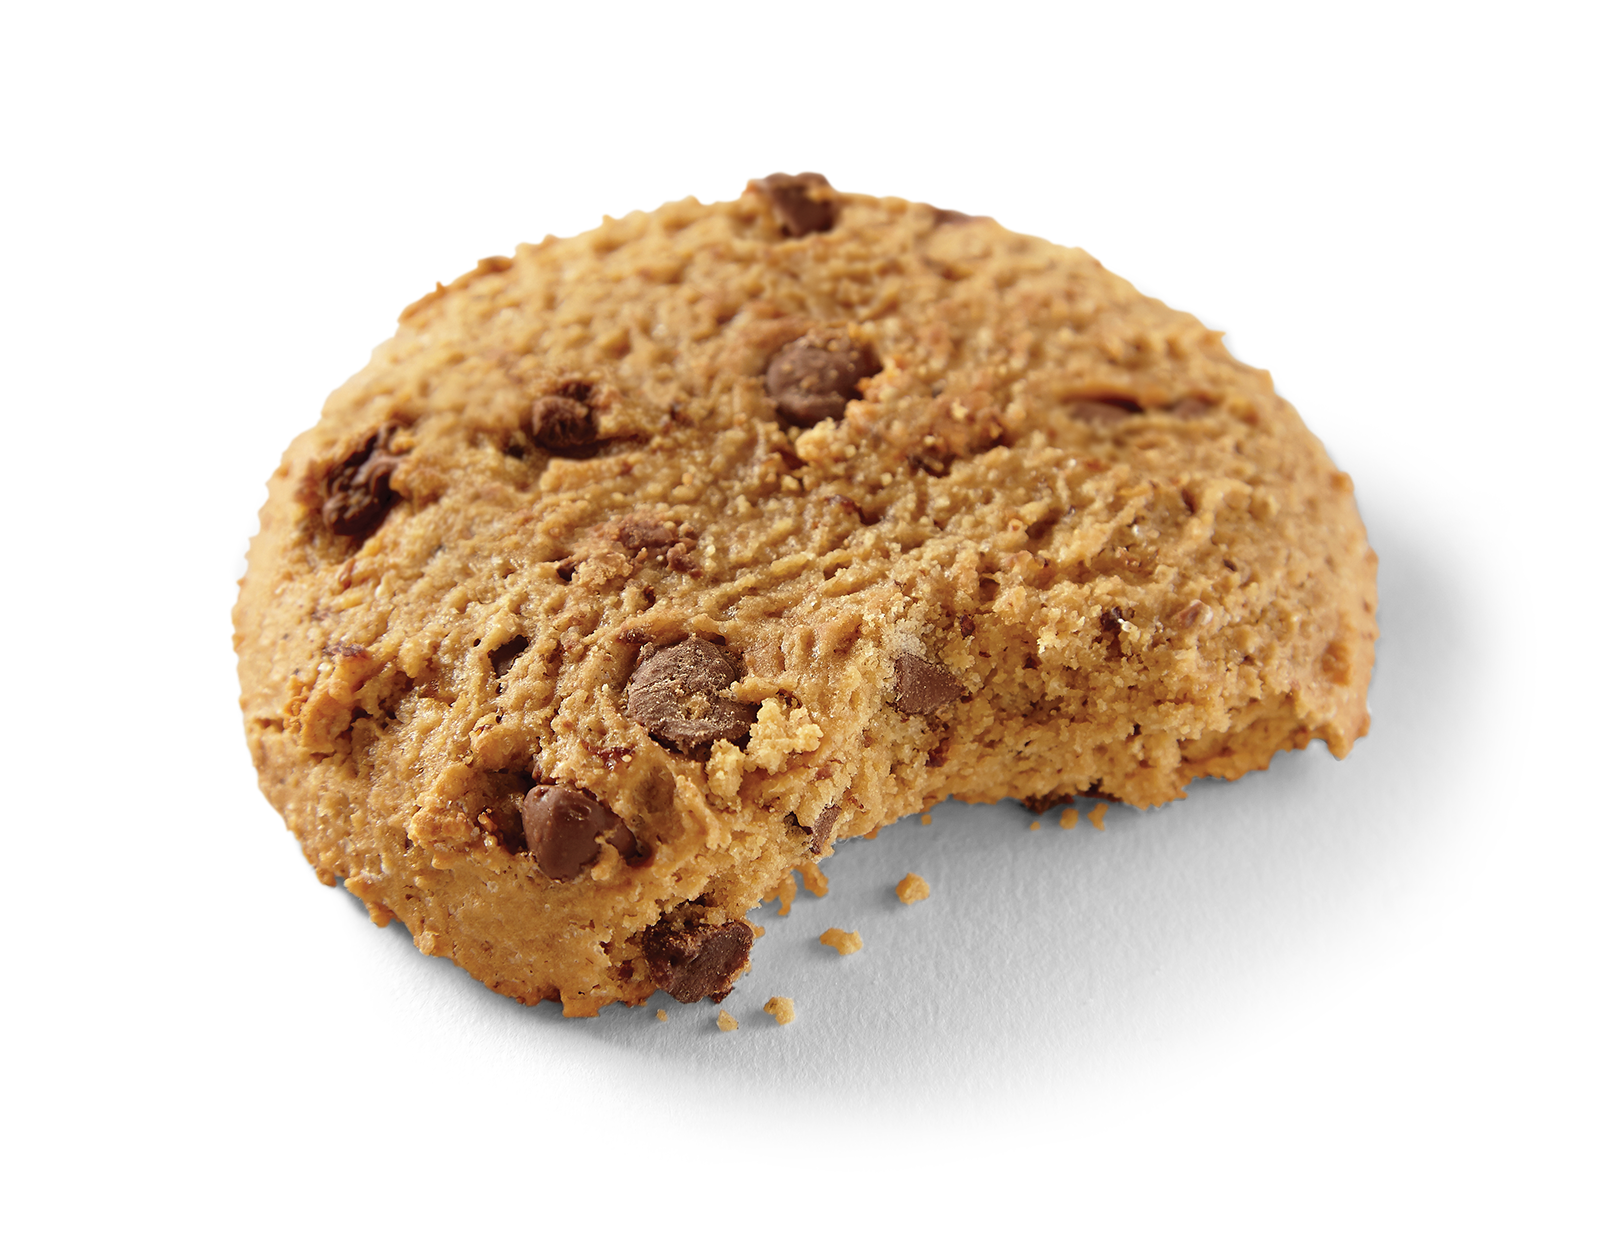 Chocolate Chip feature image